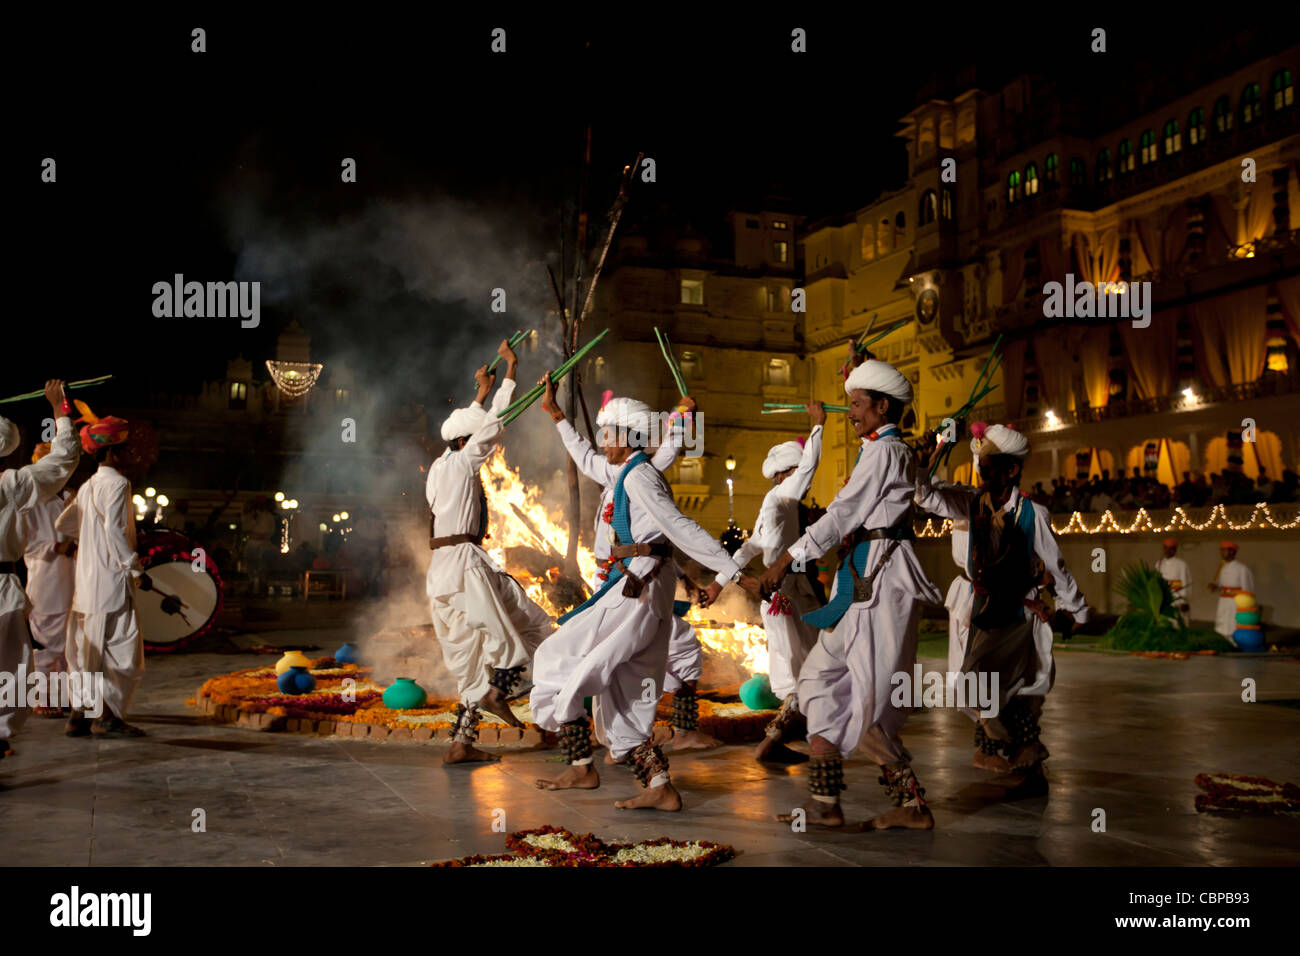 Traditional Ger dancers at The Maharana's City Palace for Hindu Holi Fire Festival, Udaipur, Rajasthan, India - Stock Image